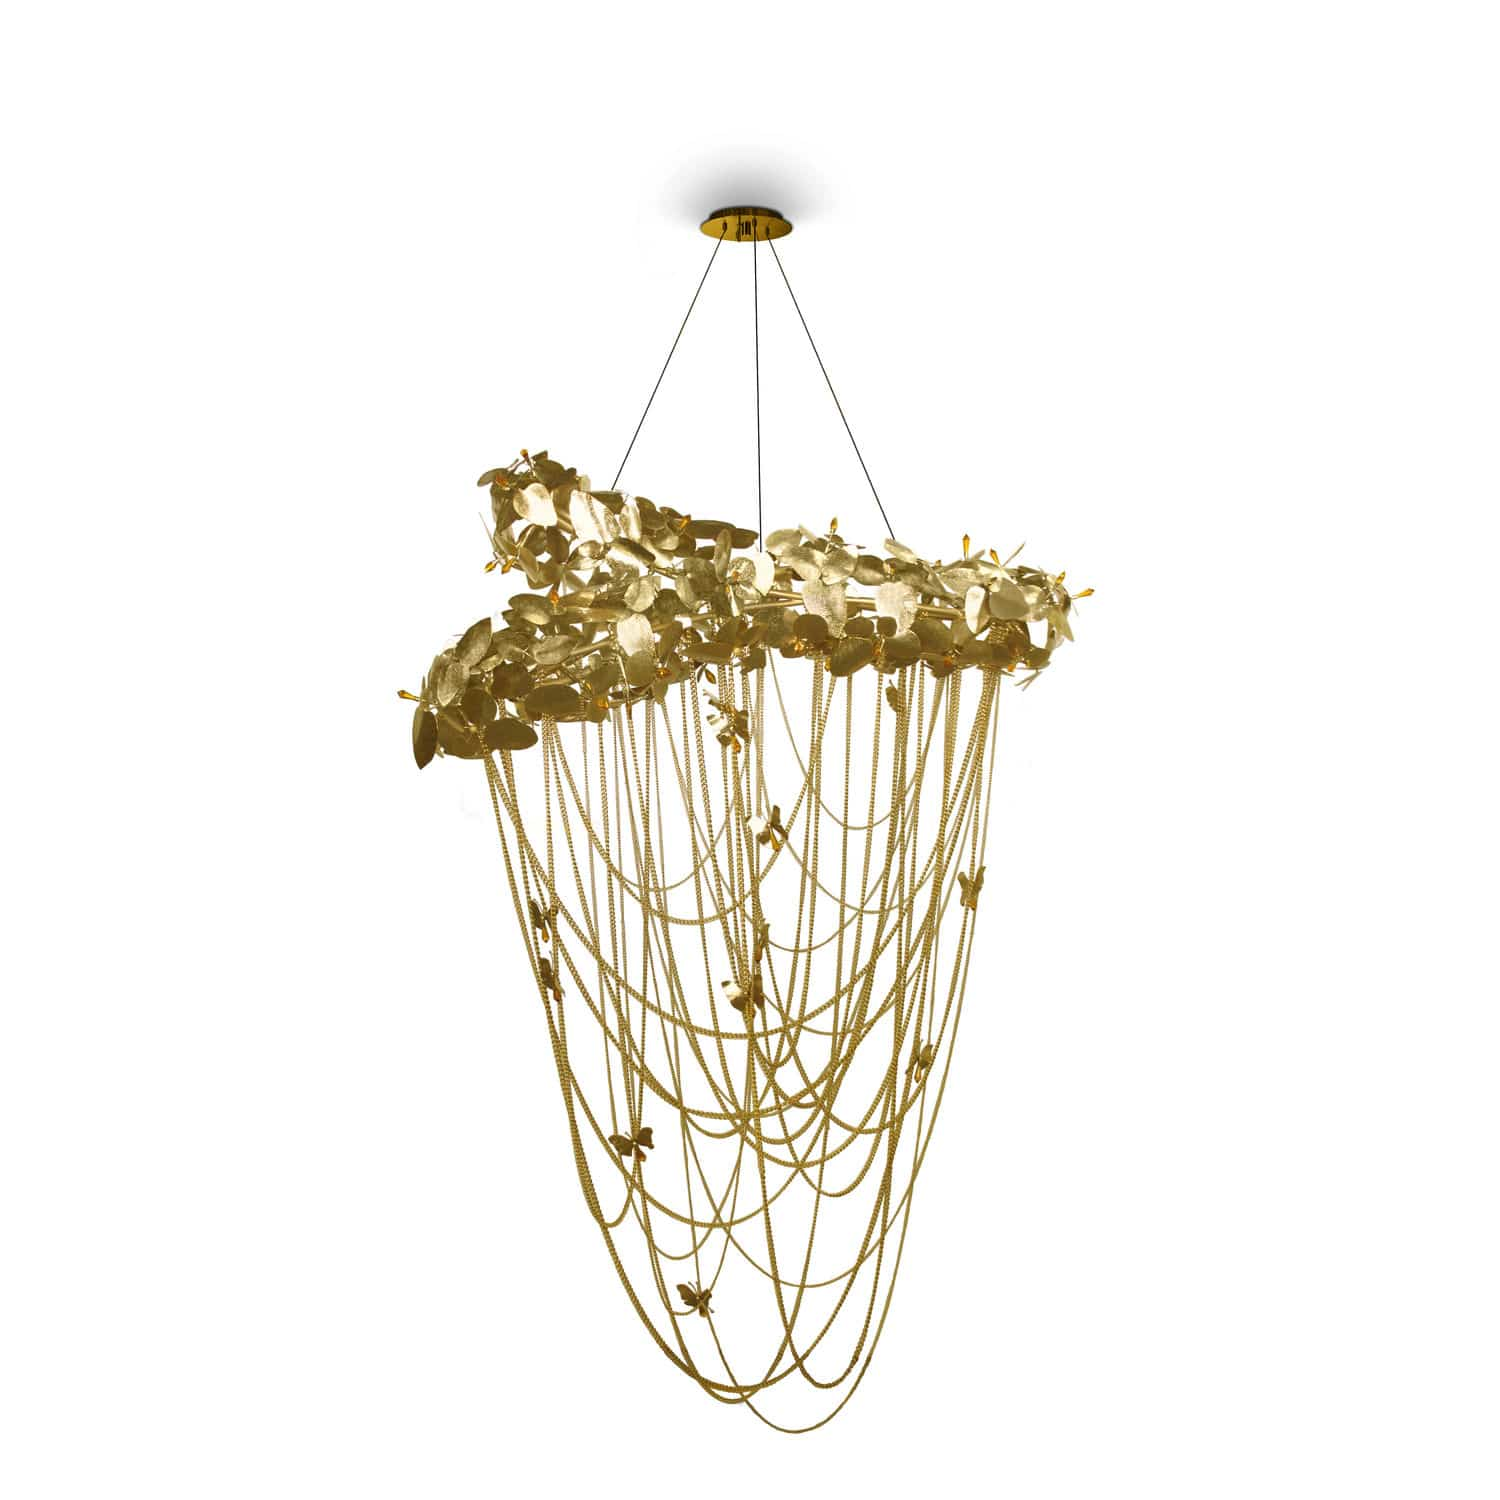 Contemporary chandelier Swarovski crystal gold plated brass